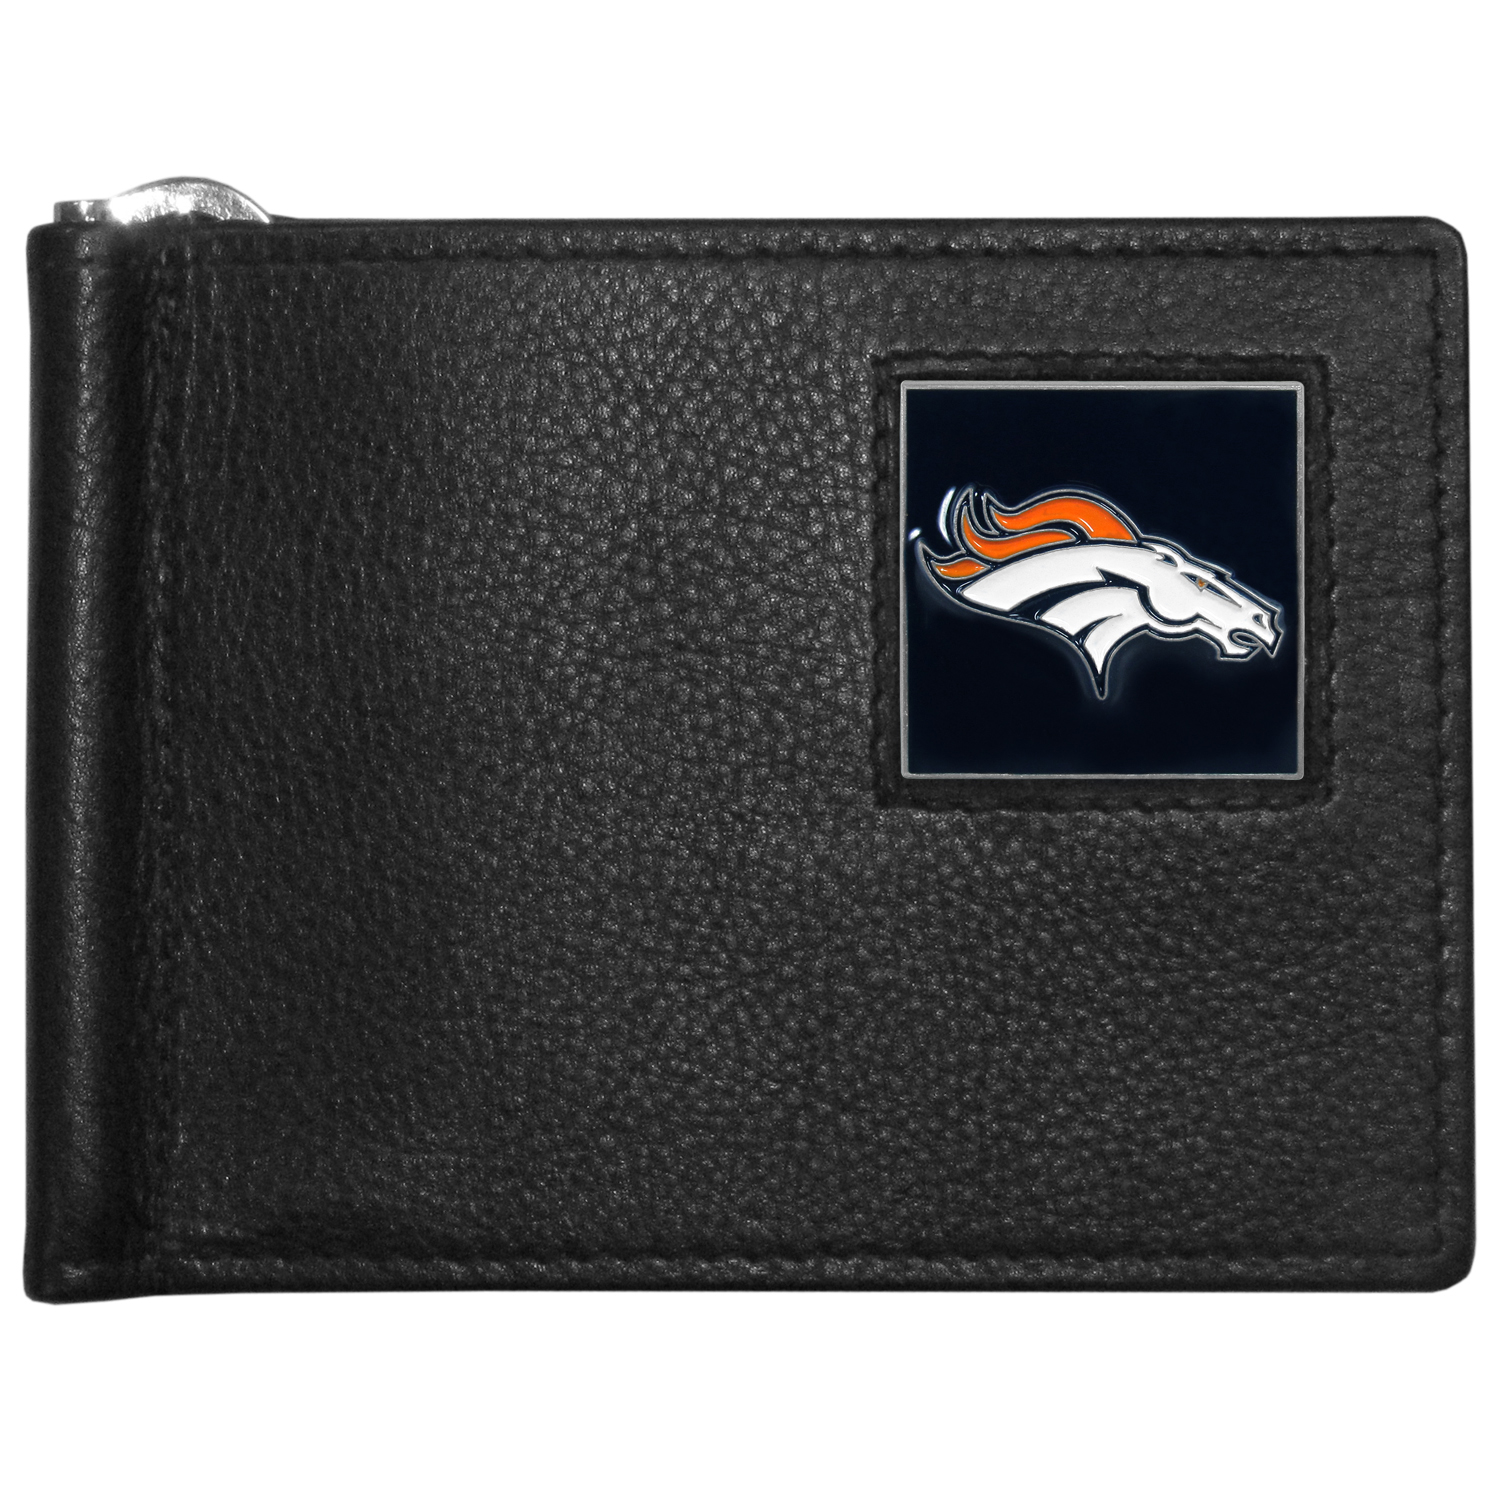 Denver Broncos Leather Bill Clip Wallet - This cool new style wallet features an inner, metal bill clip that lips up for easy access. The super slim wallet holds tons of stuff with ample pockets, credit card slots & windowed ID slot.  The wallet is made of genuine fine grain leather and it finished with a metal Denver Broncos emblem. The wallet is shipped in gift box packaging.